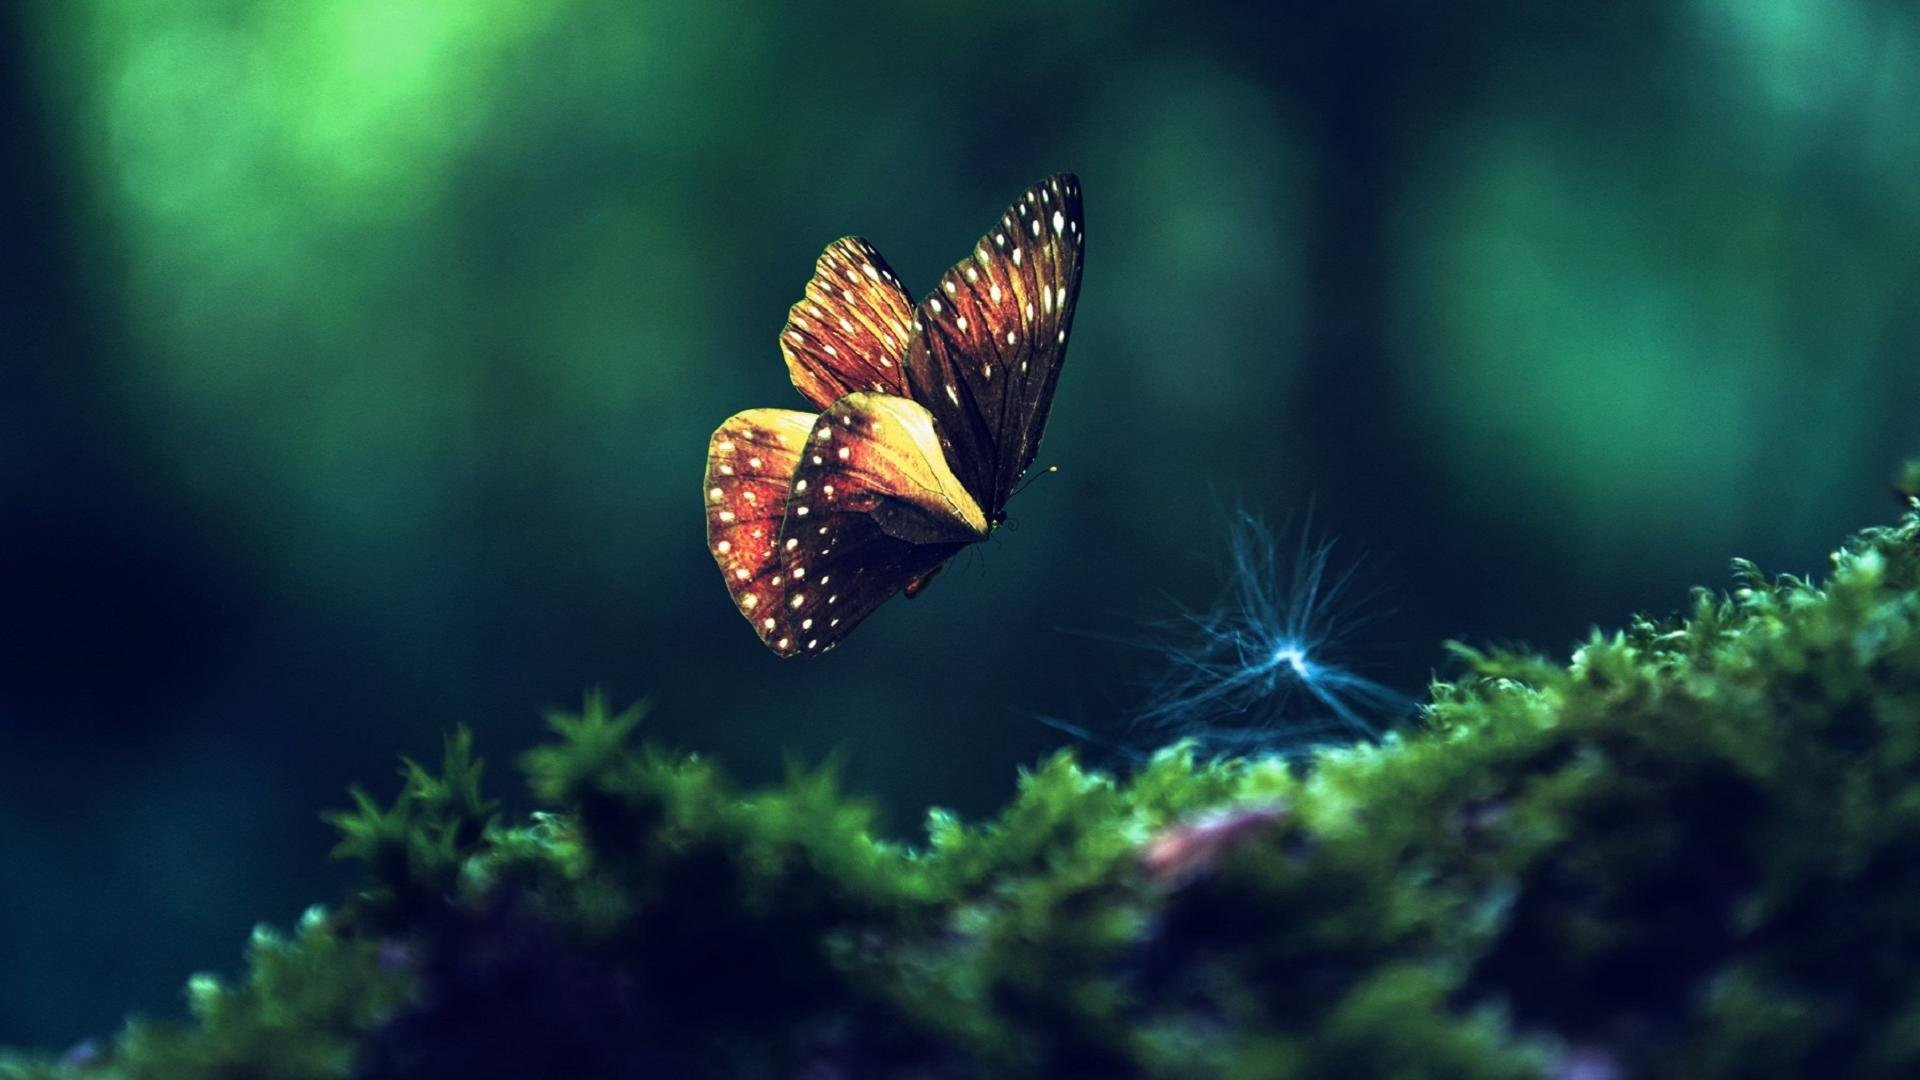 download full hd 1080p butterfly desktop wallpaper id 167530 for free